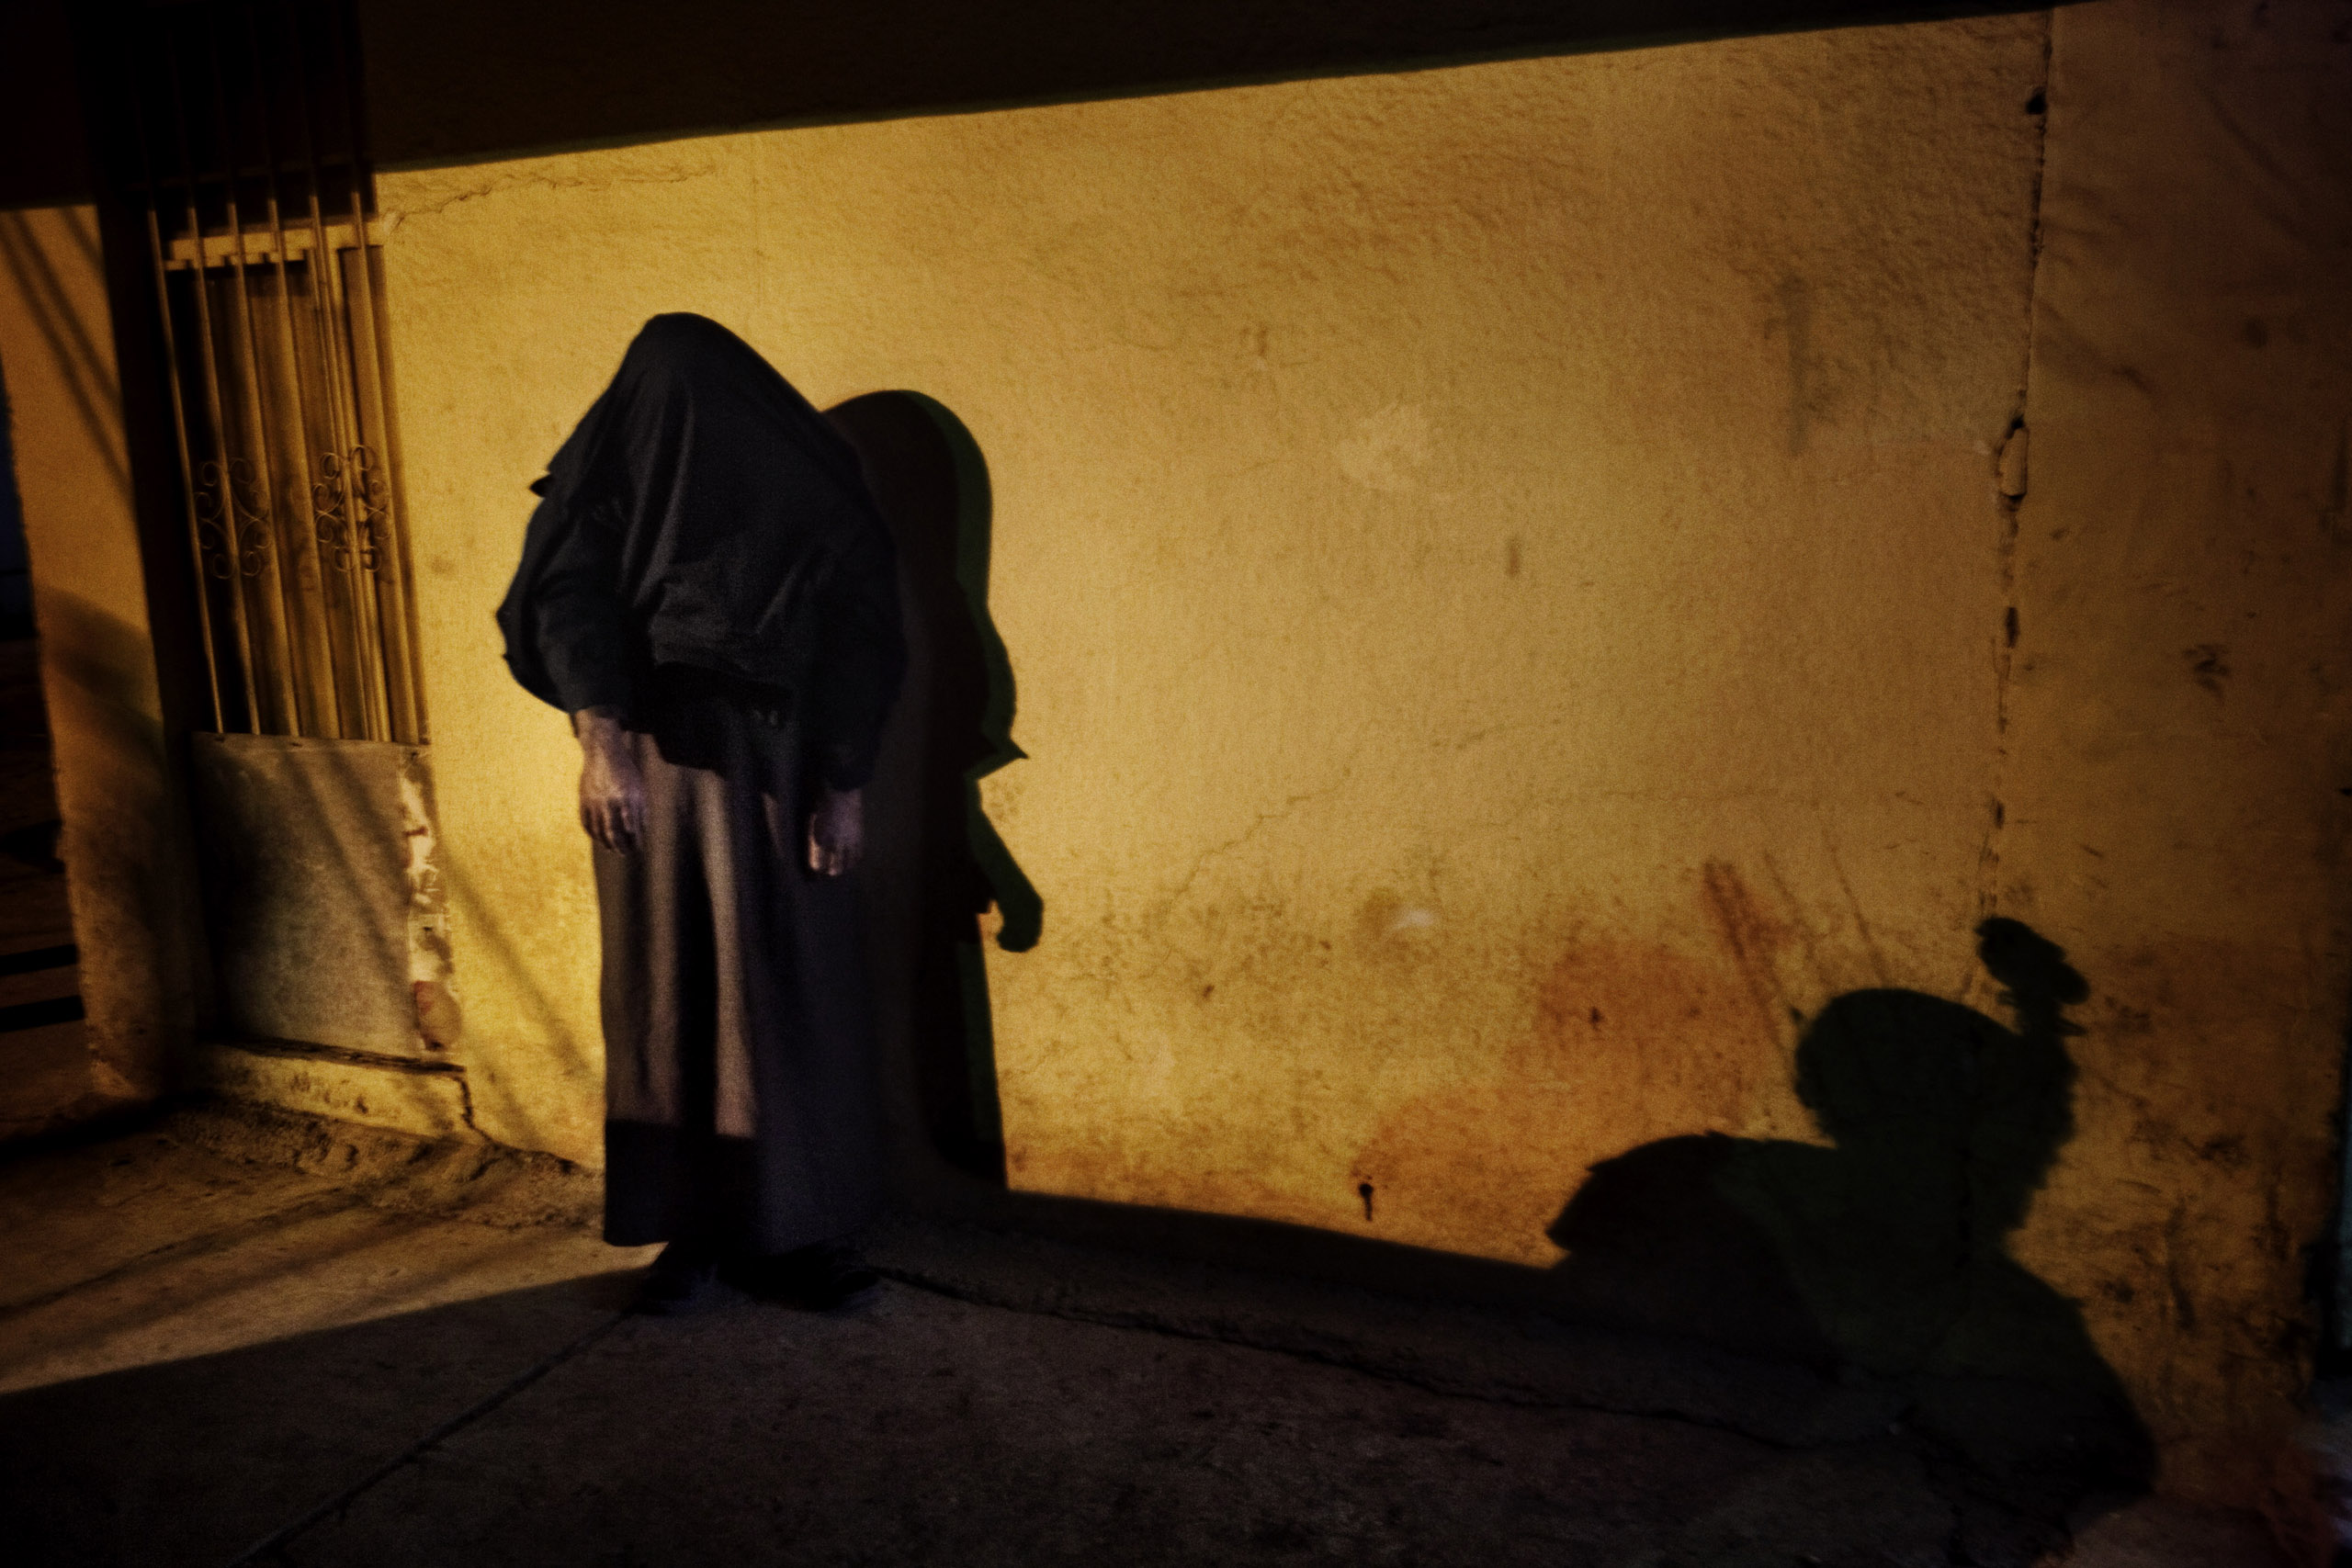 A suspected insurgent captured by U.S. and Iraqi forces, Mosul, Iraq, Feb. 11, 2008.